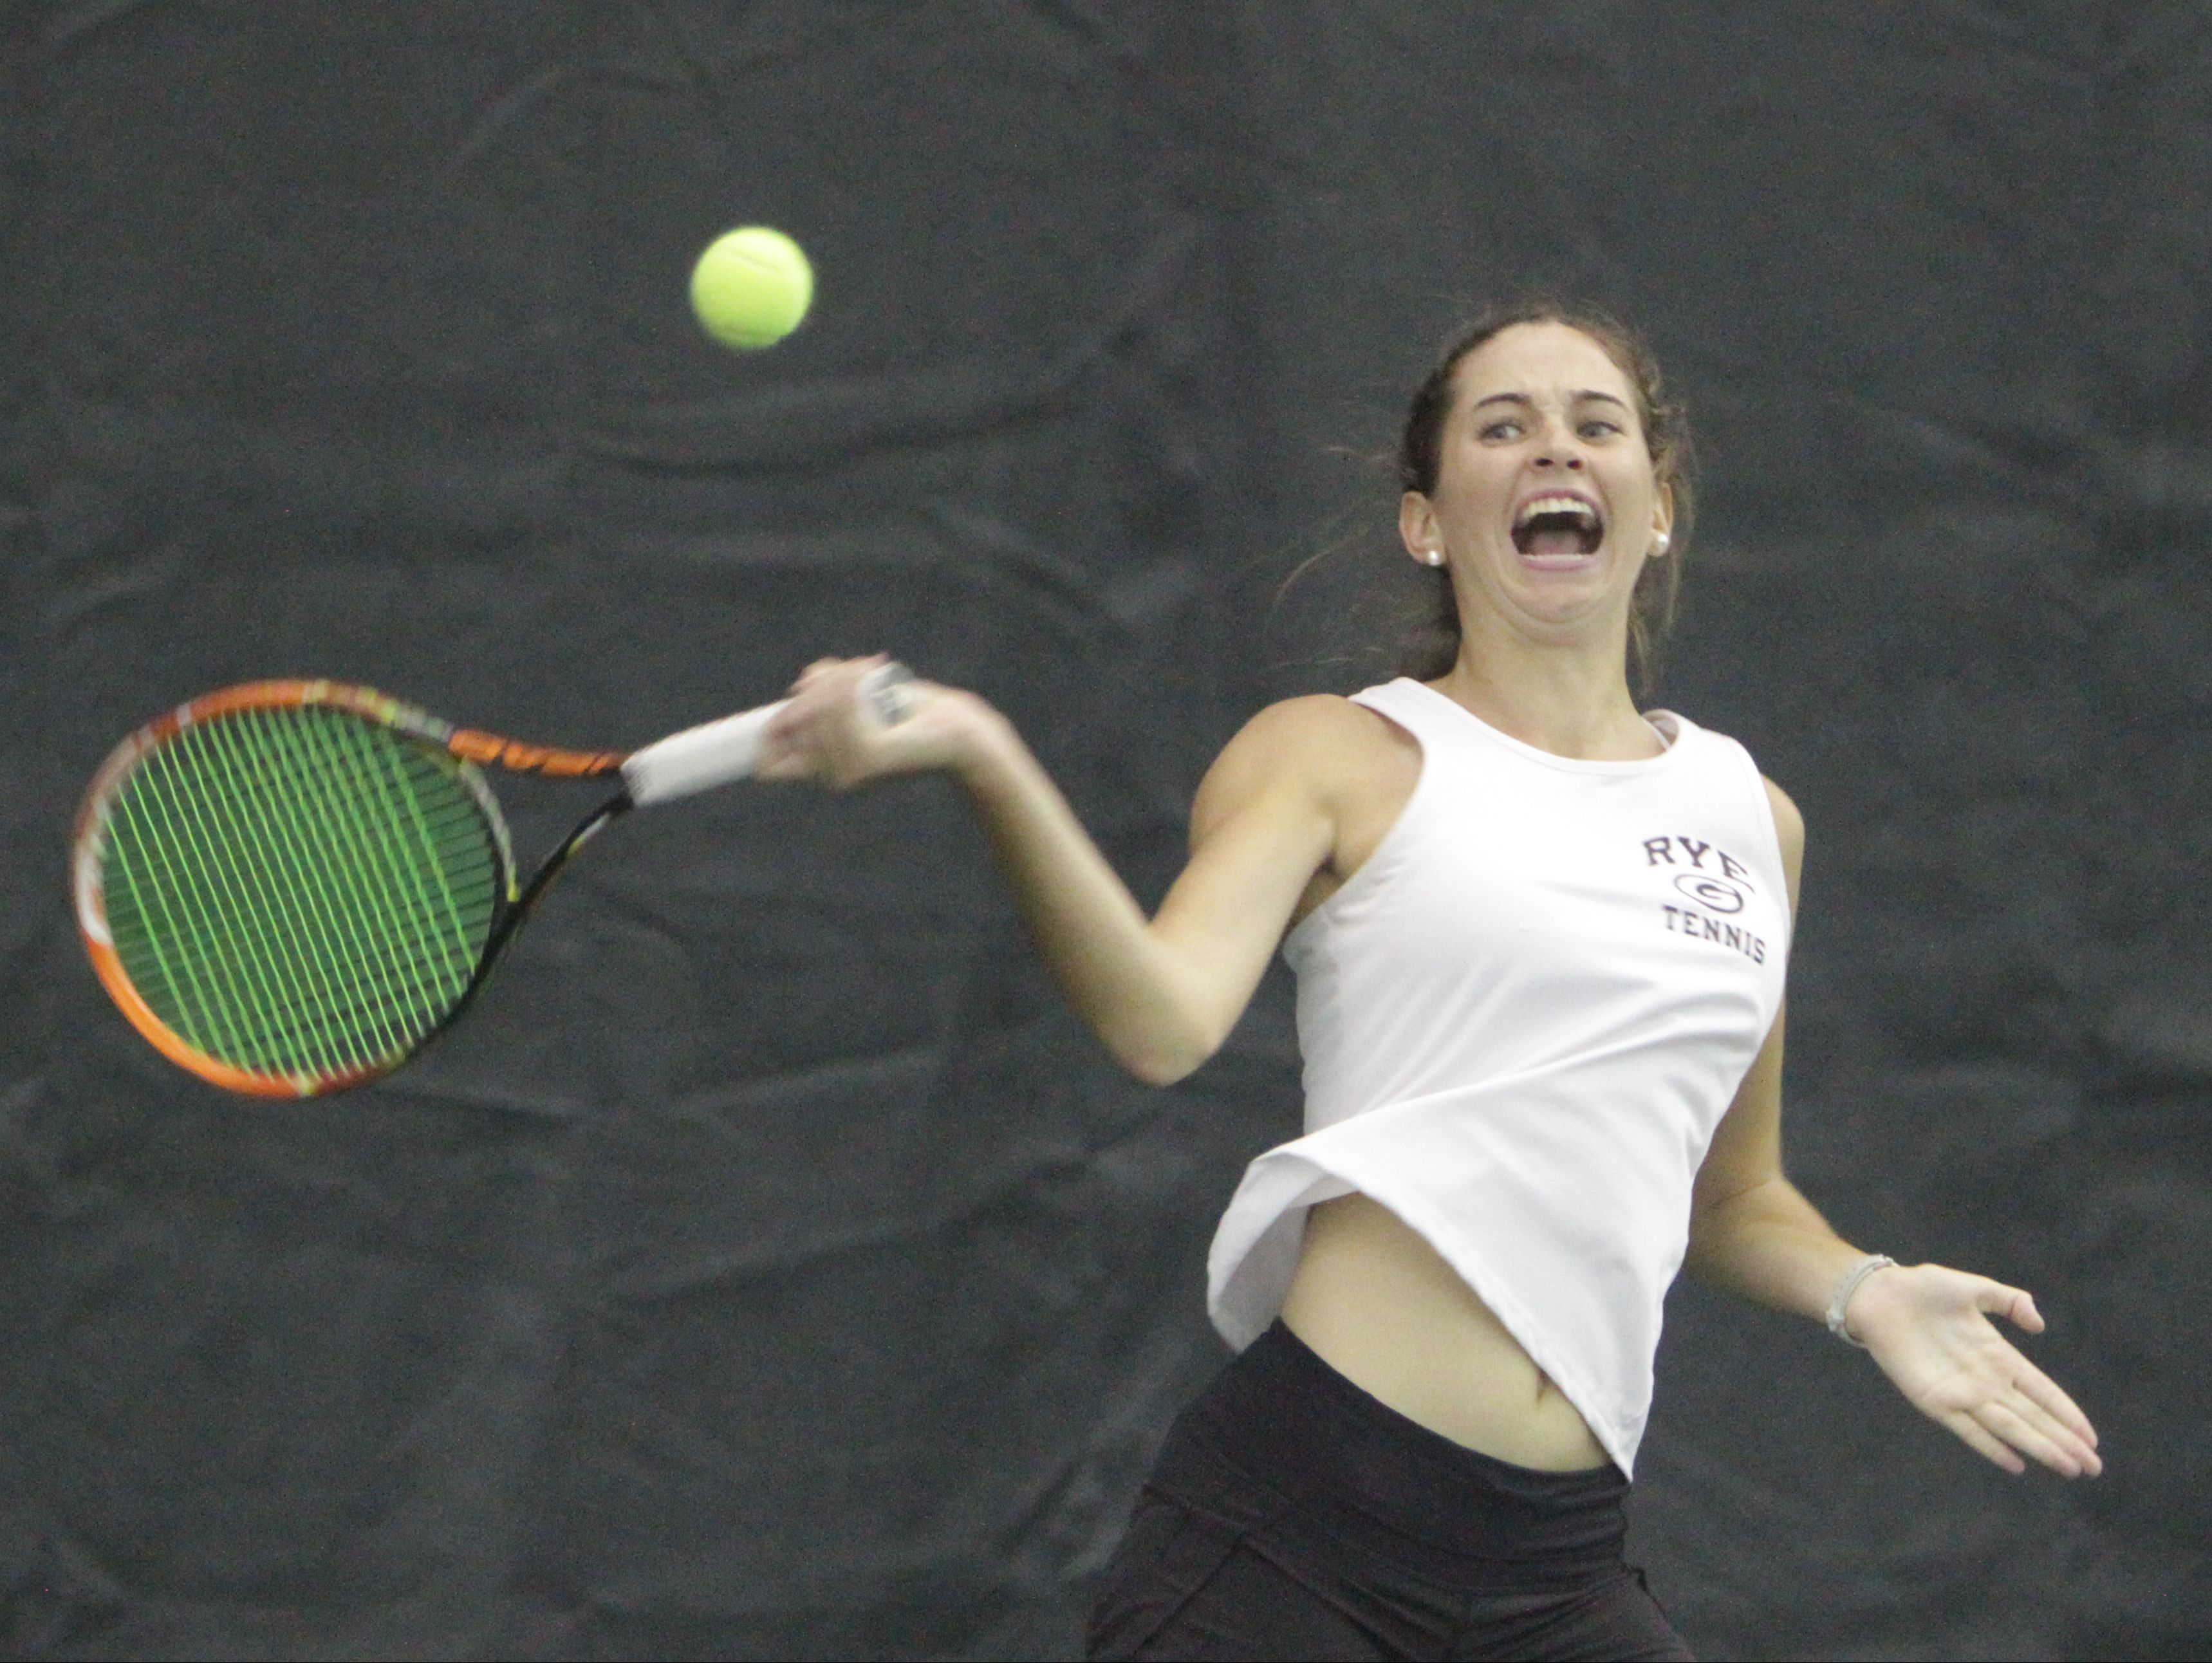 Rye's Nathalie Rodilosso, pictured here in a file photo from last week's sectional third-place game at Sound Shore Indoor Tennis on Oct. 23rd, advanced to the quarterfinals of the state championships on Saturday.